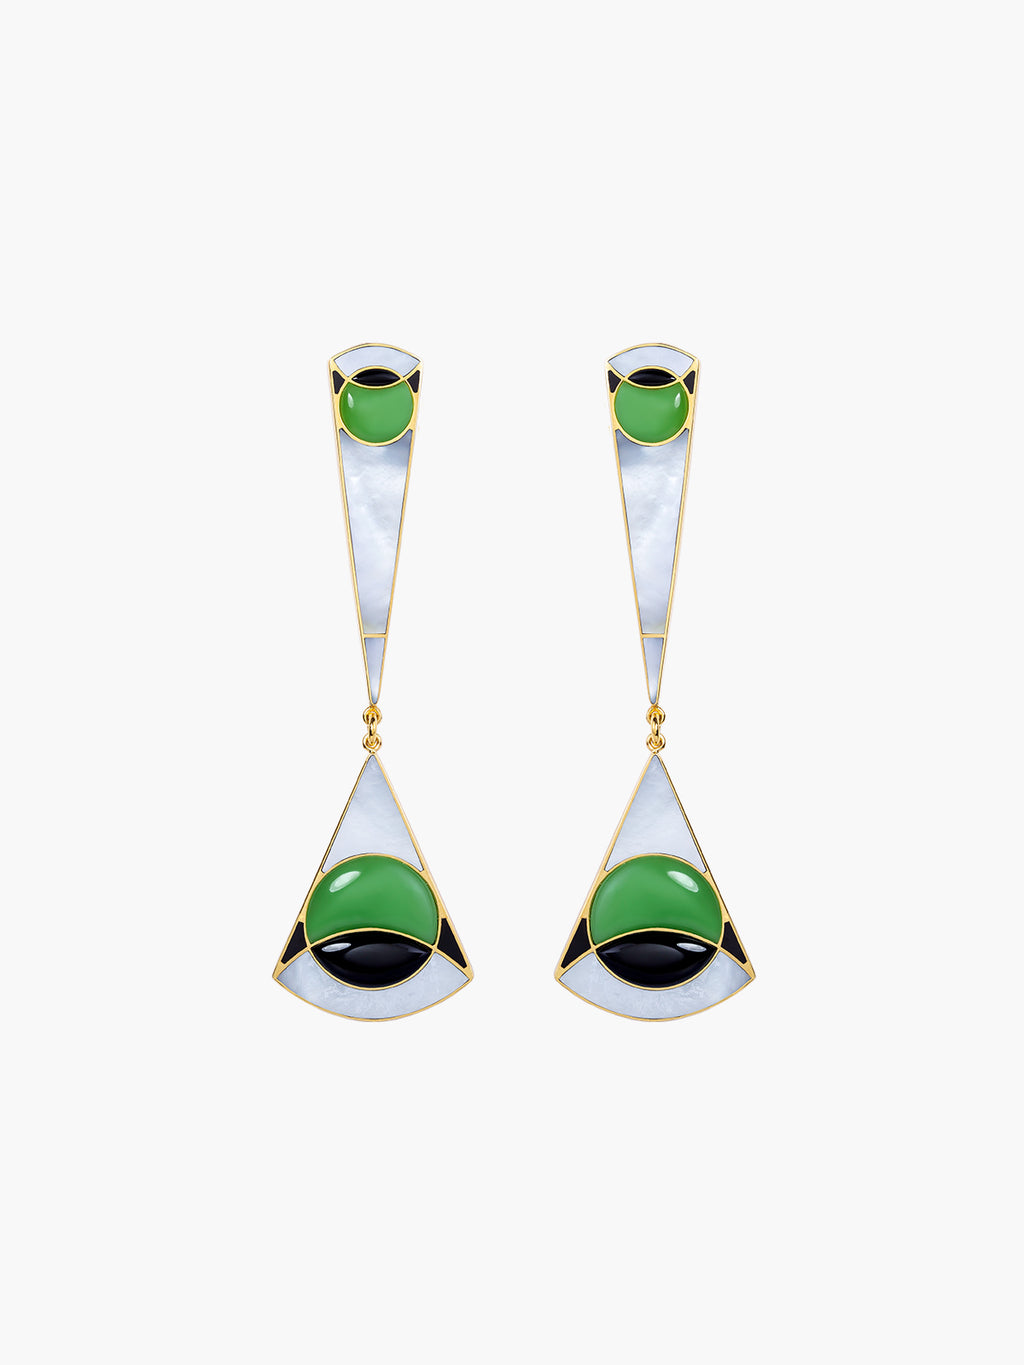 Ennio Chandelier Earrings